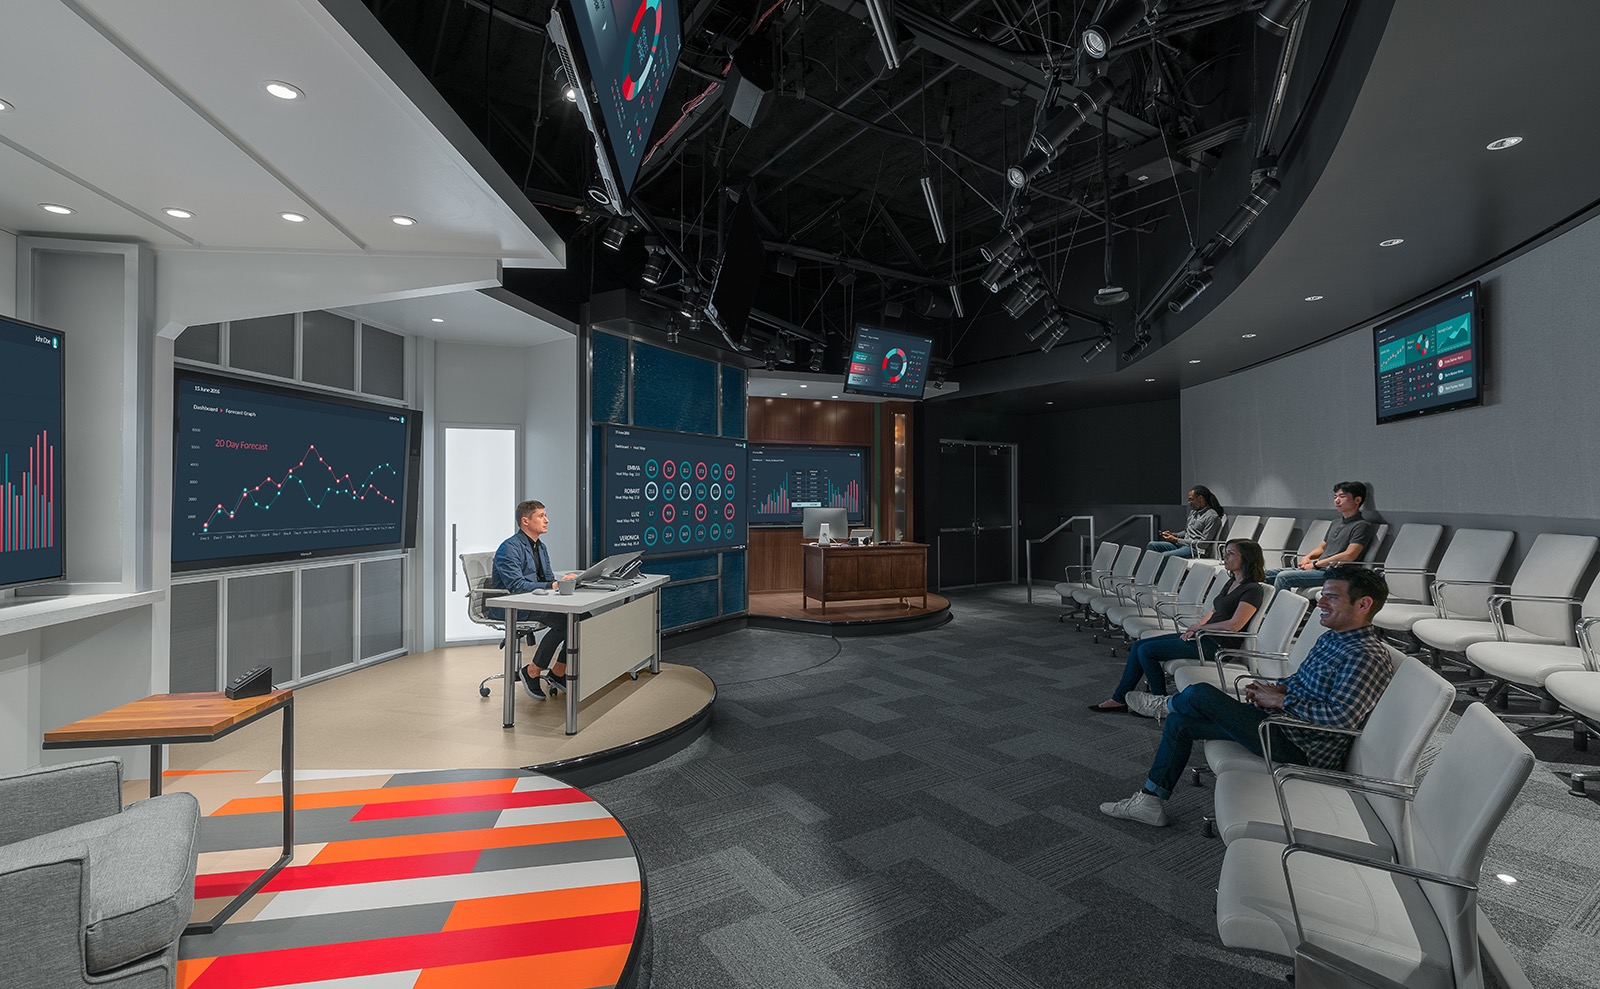 A look inside technology company offices in sunnyvale officelovin 39 - Universal music group office ...